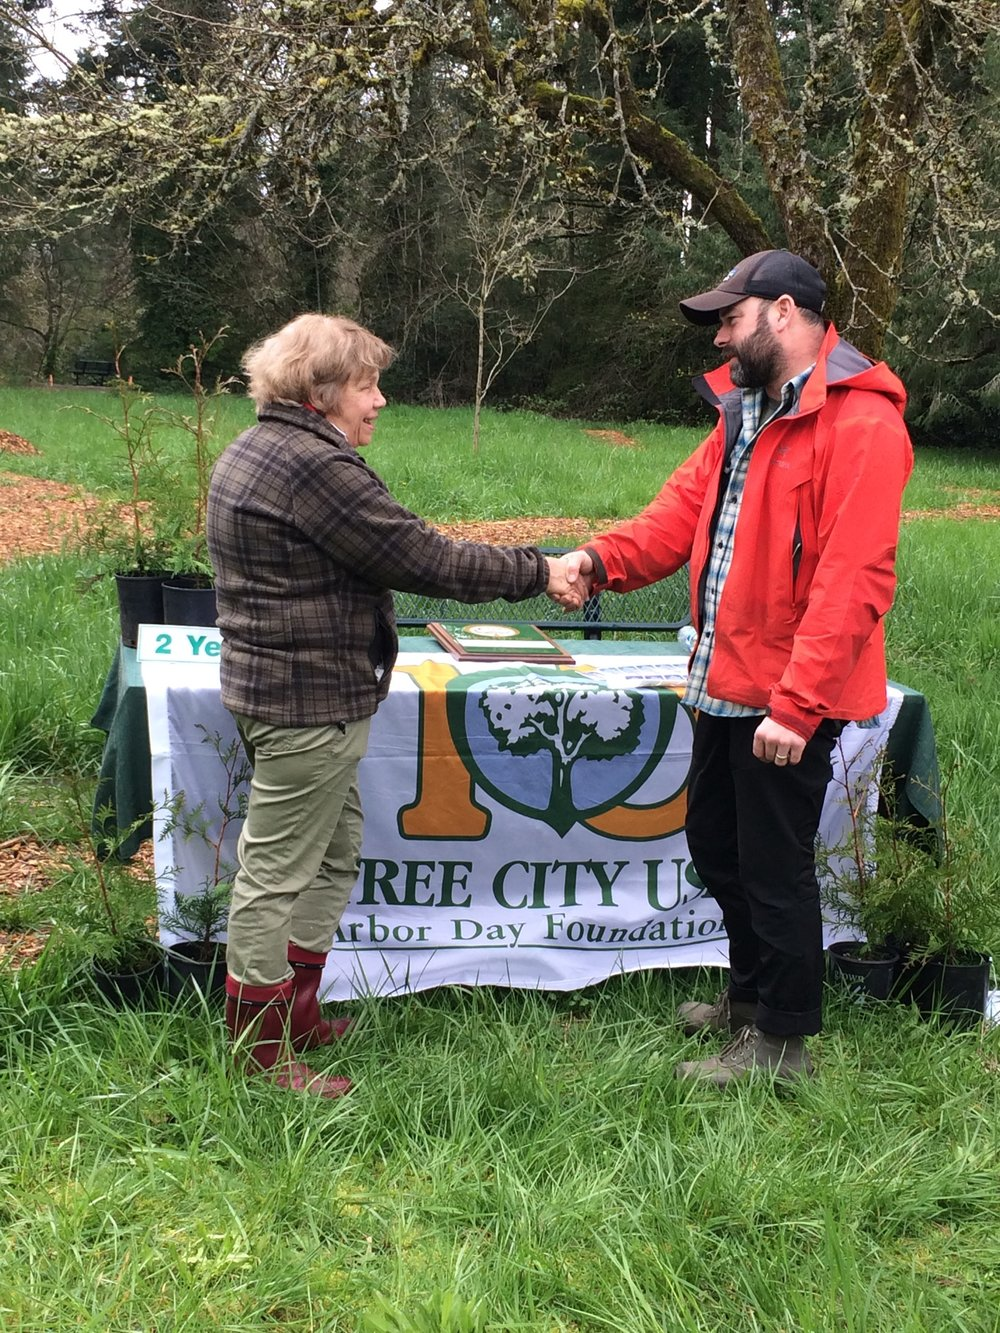 City Arborist Brian French congratulates Mayor Heather Kibbey on receiving the distinction of a Tree City USA for the second year in a row.